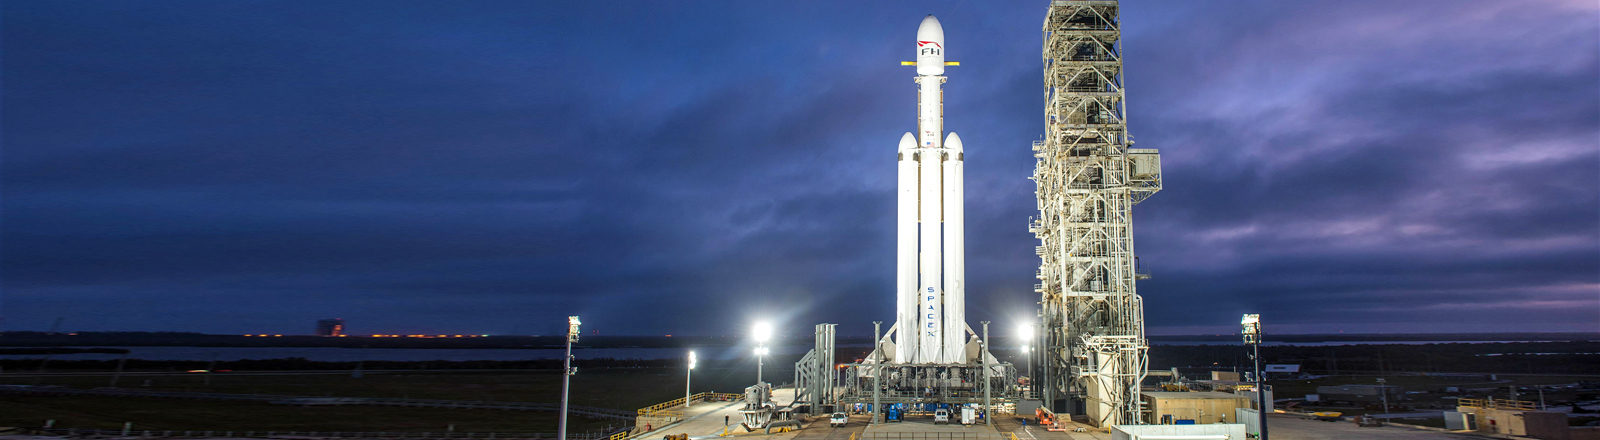 SpaxeX Rakete Falcon Heavy in Cape Canaveral, Florida